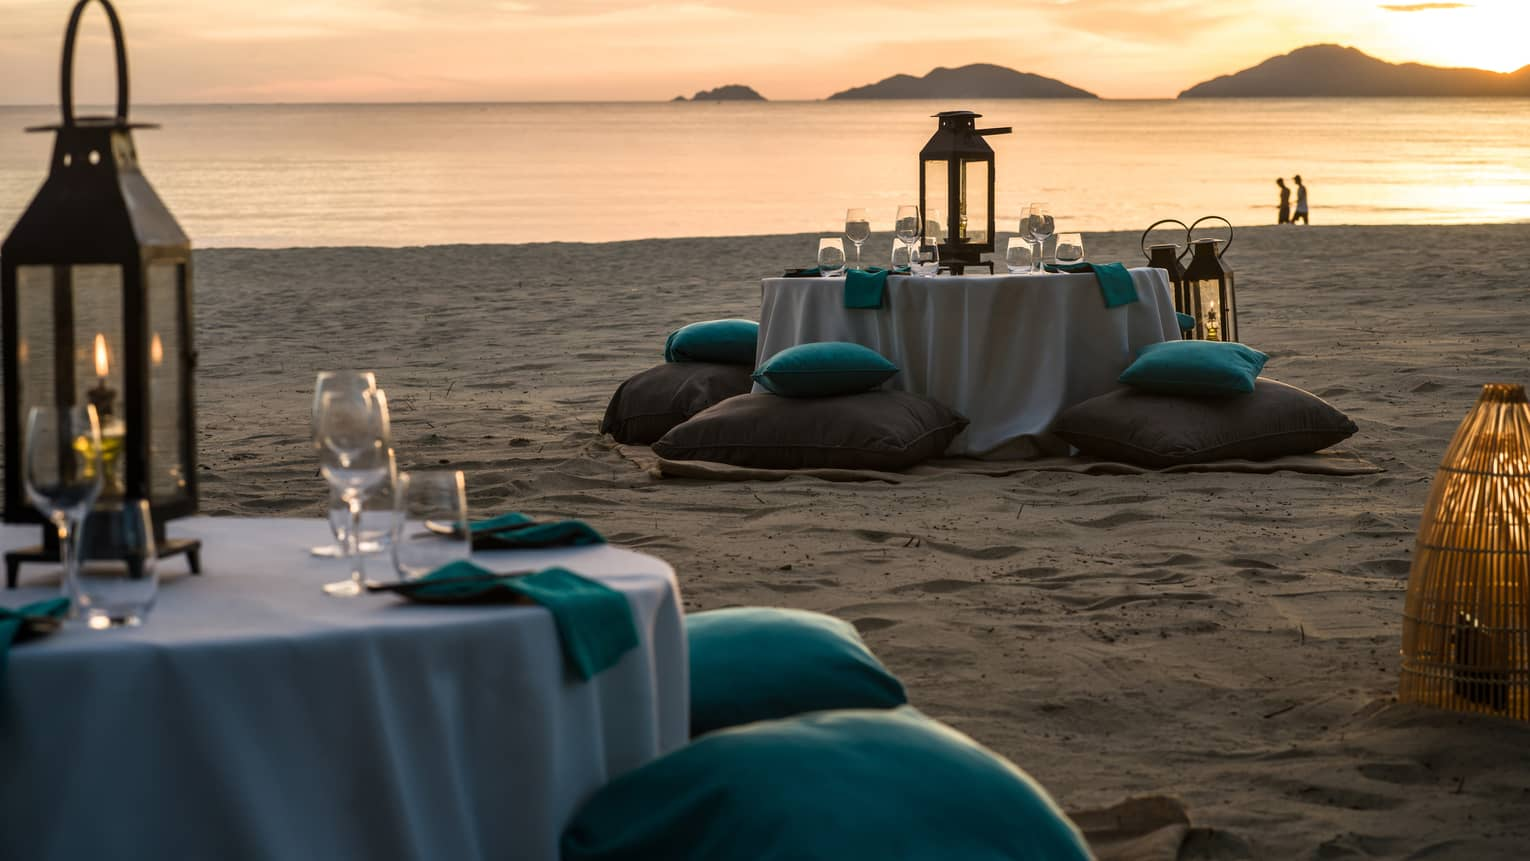 Two tables with white cloths, glasses, lanterns and turquoise cushions on sandy beach at dusk